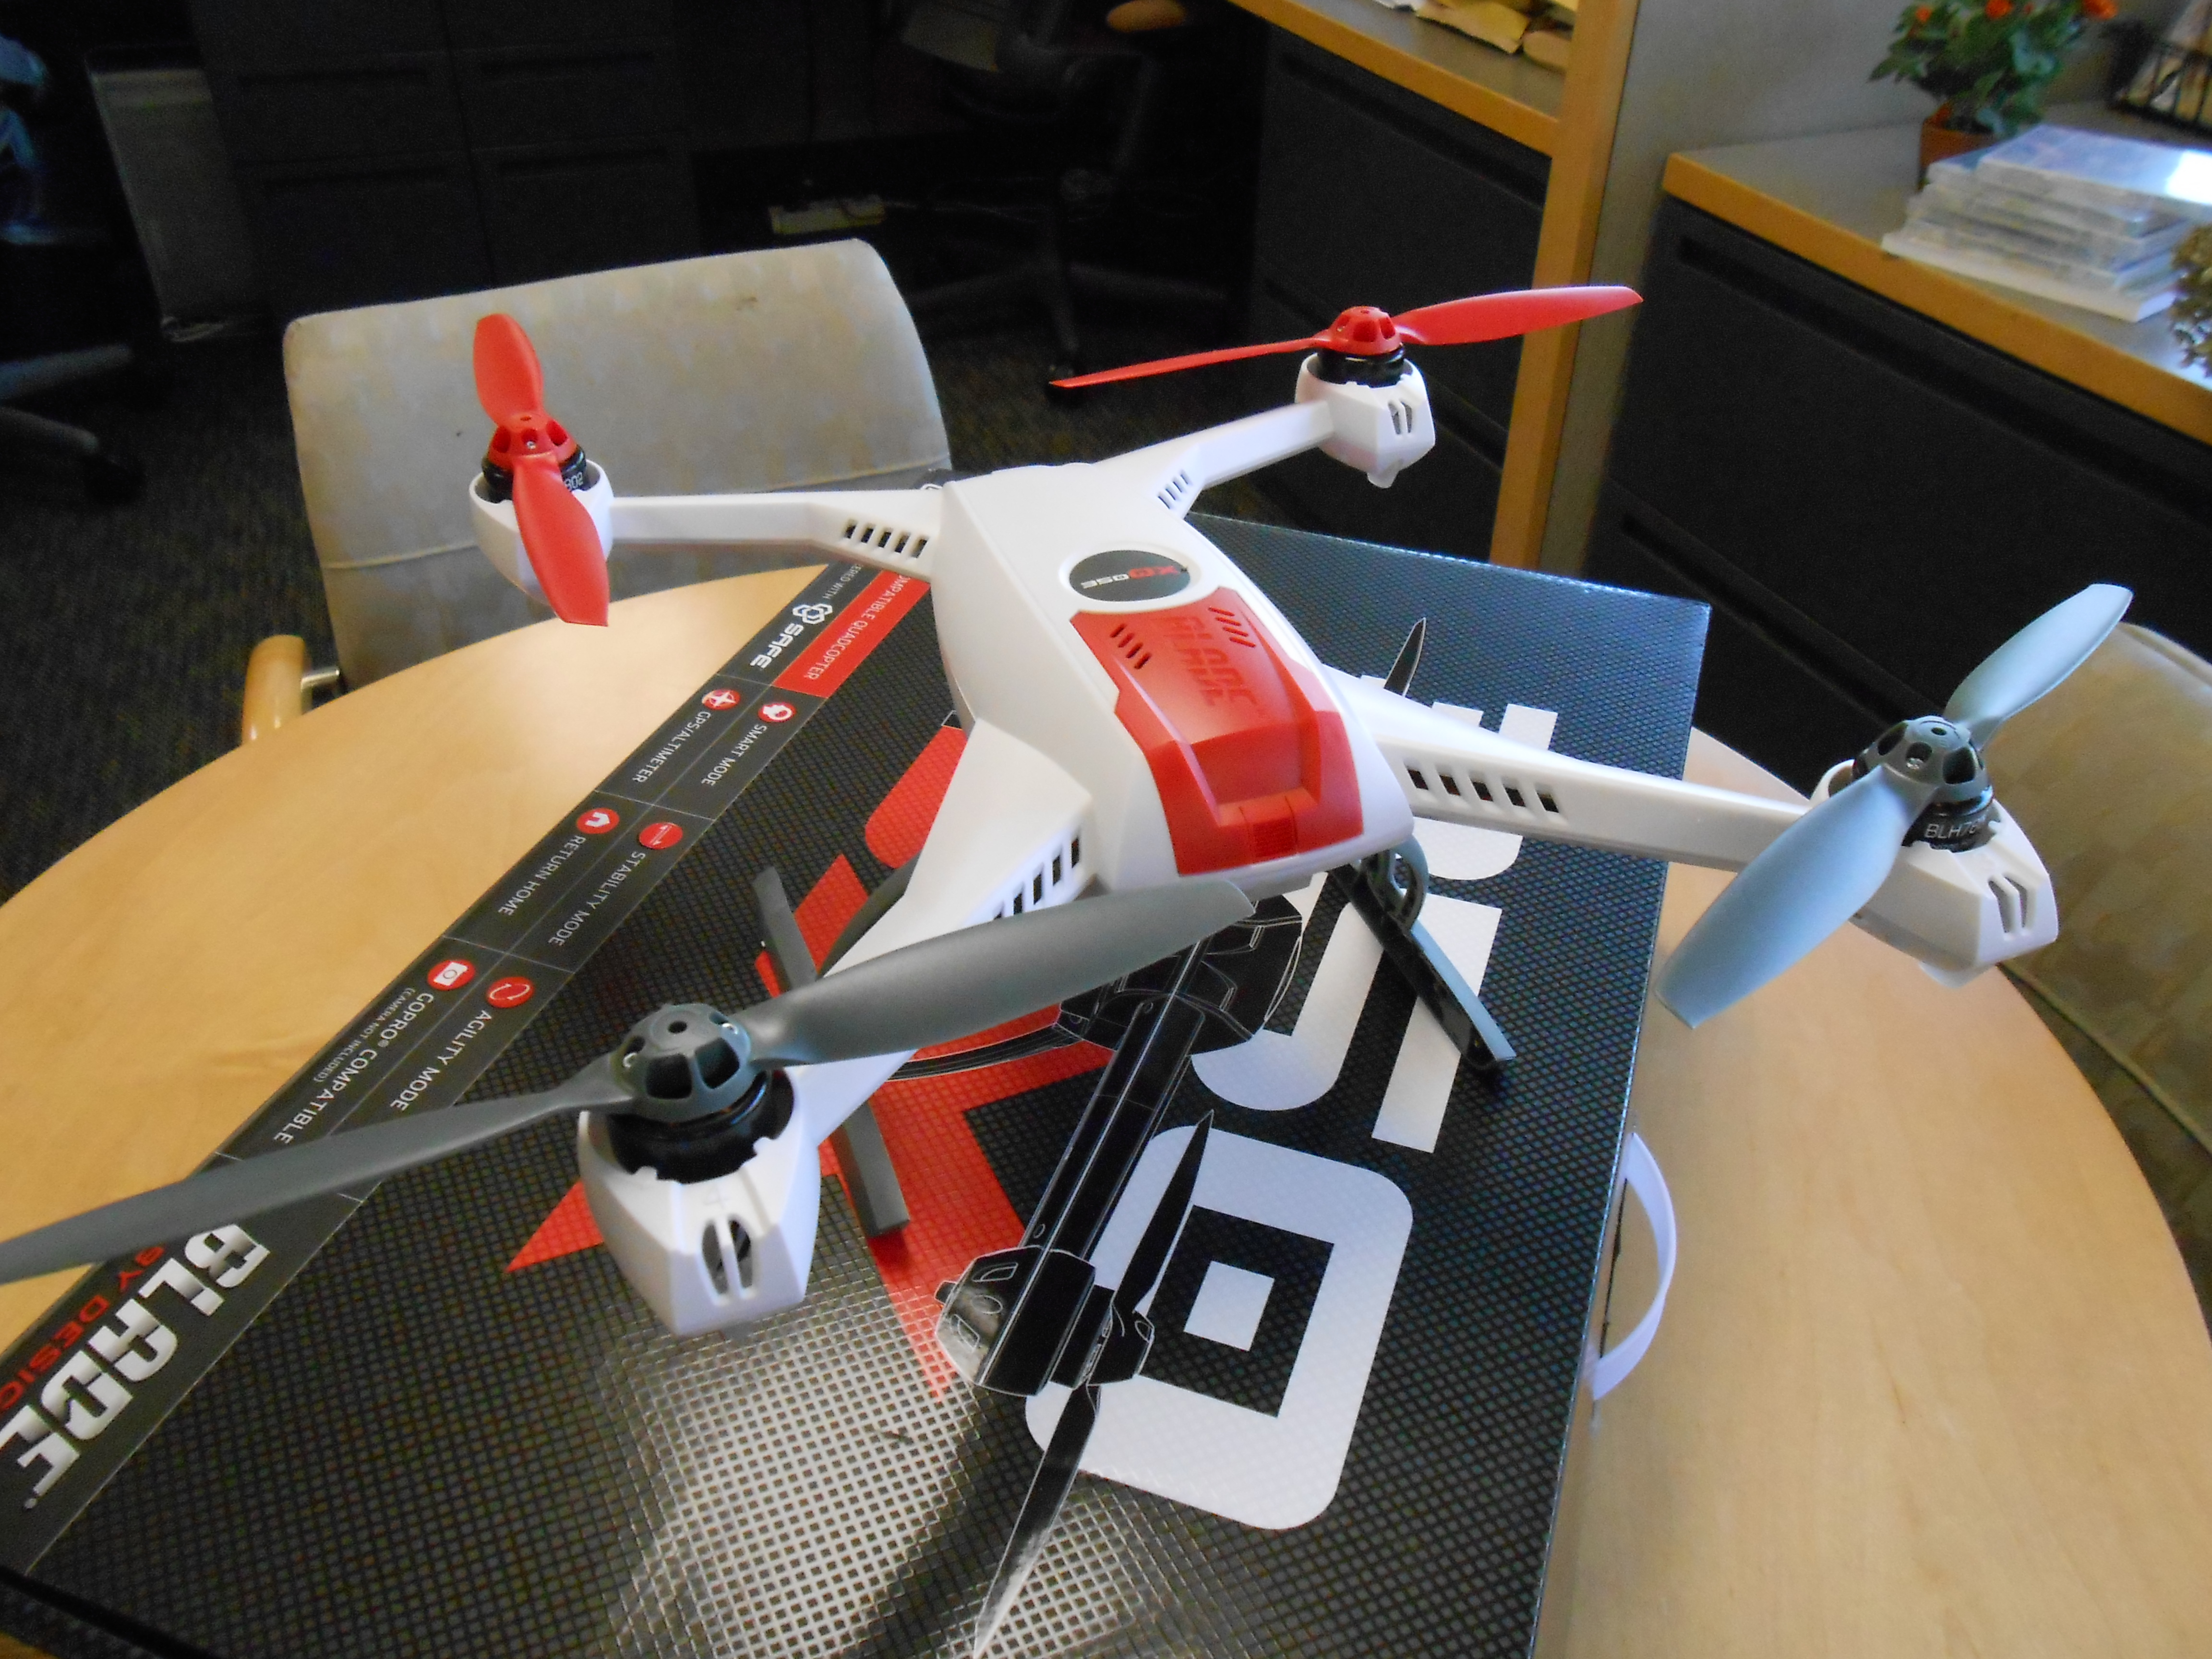 Sneak Peek — Blade 350 QX Quadcopter with GPS stability